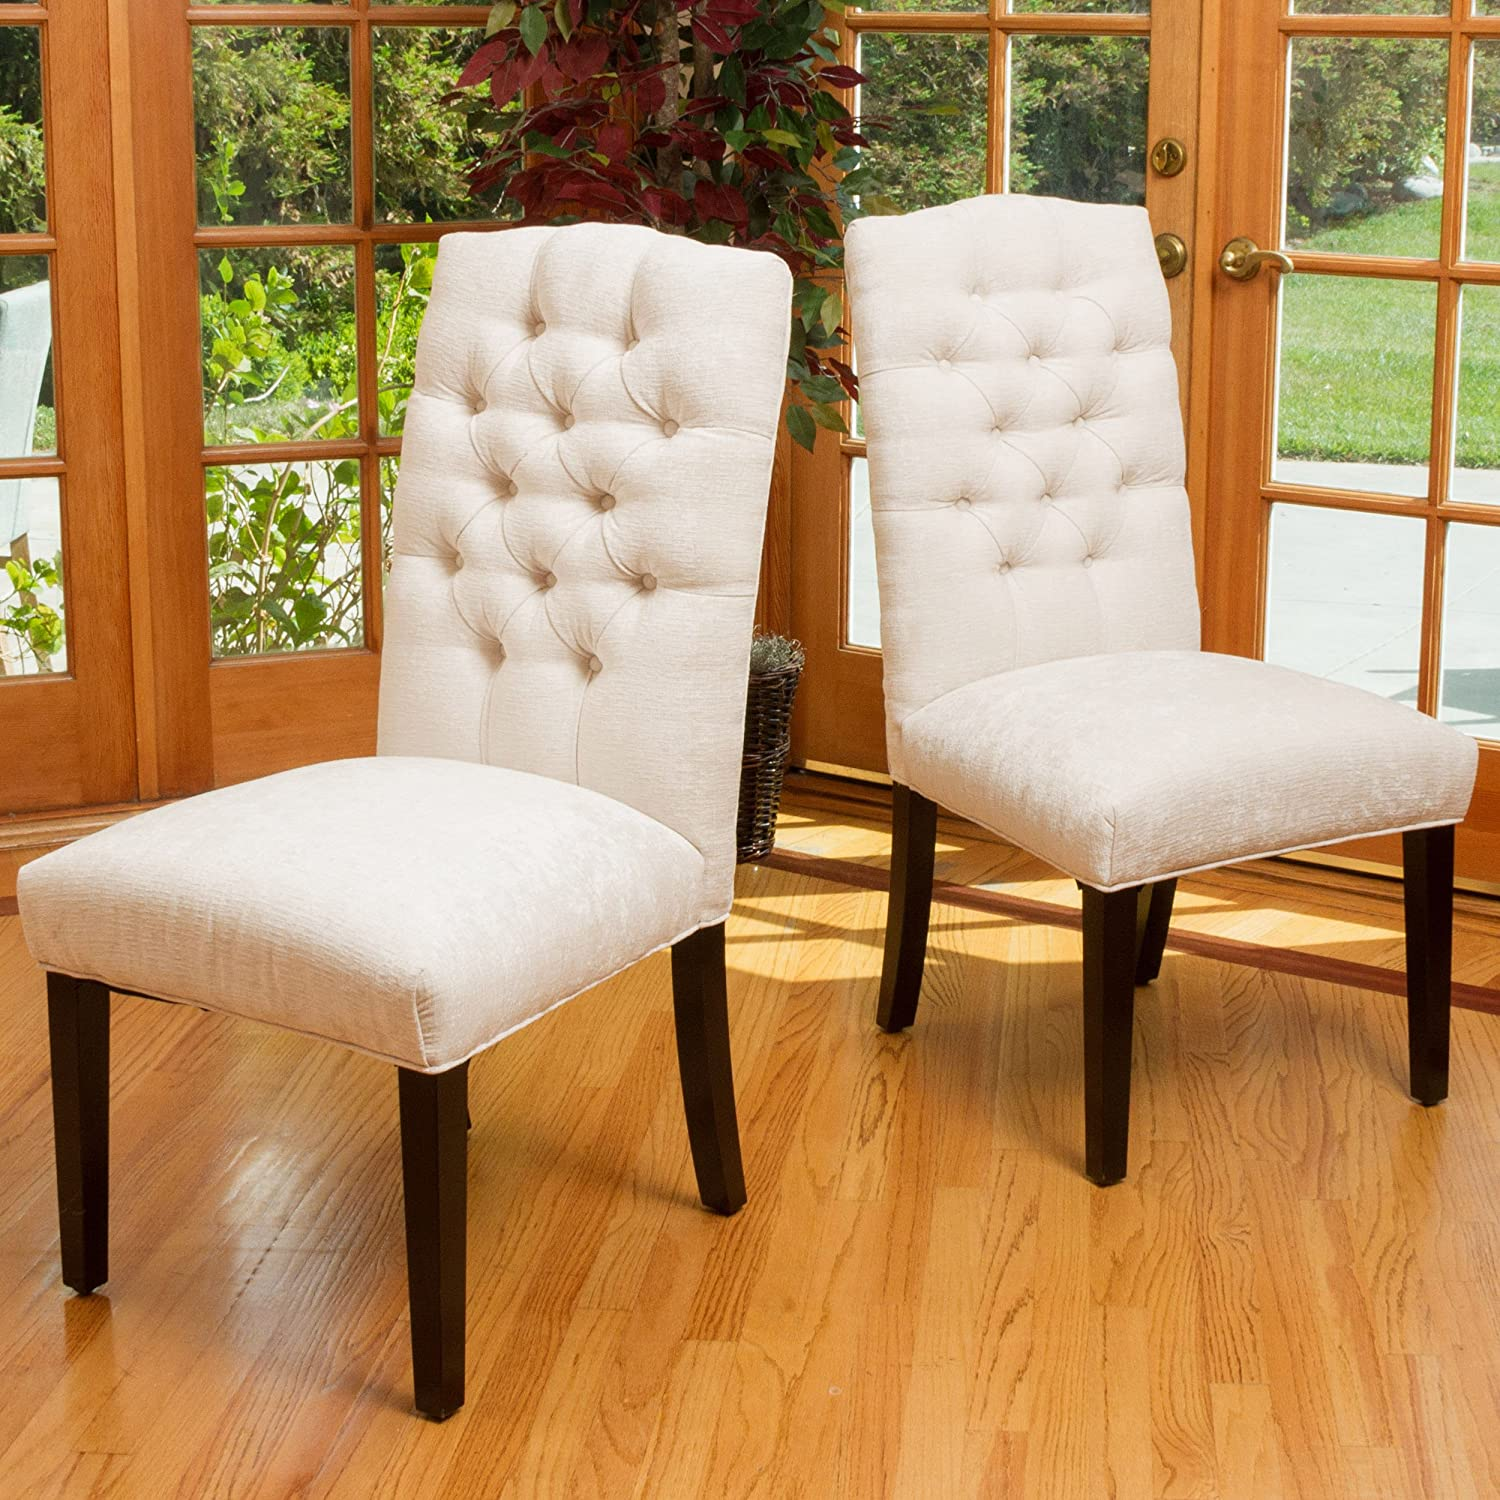 Christopher Knight Home 295076 Crown Top Dining Chair (Set of 2), Ivory